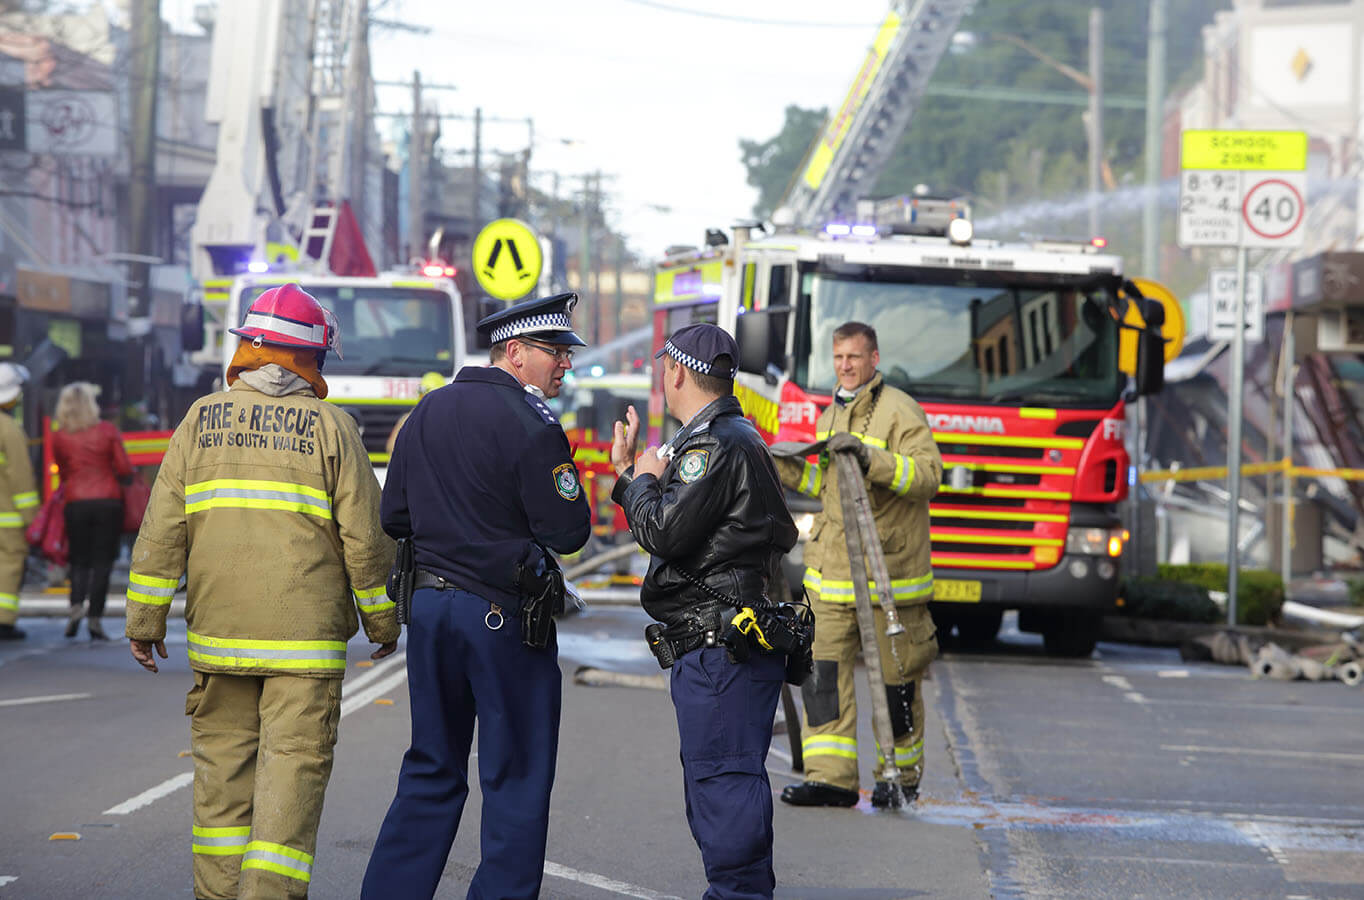 Police and Fire fighters attend blast explosion at shop